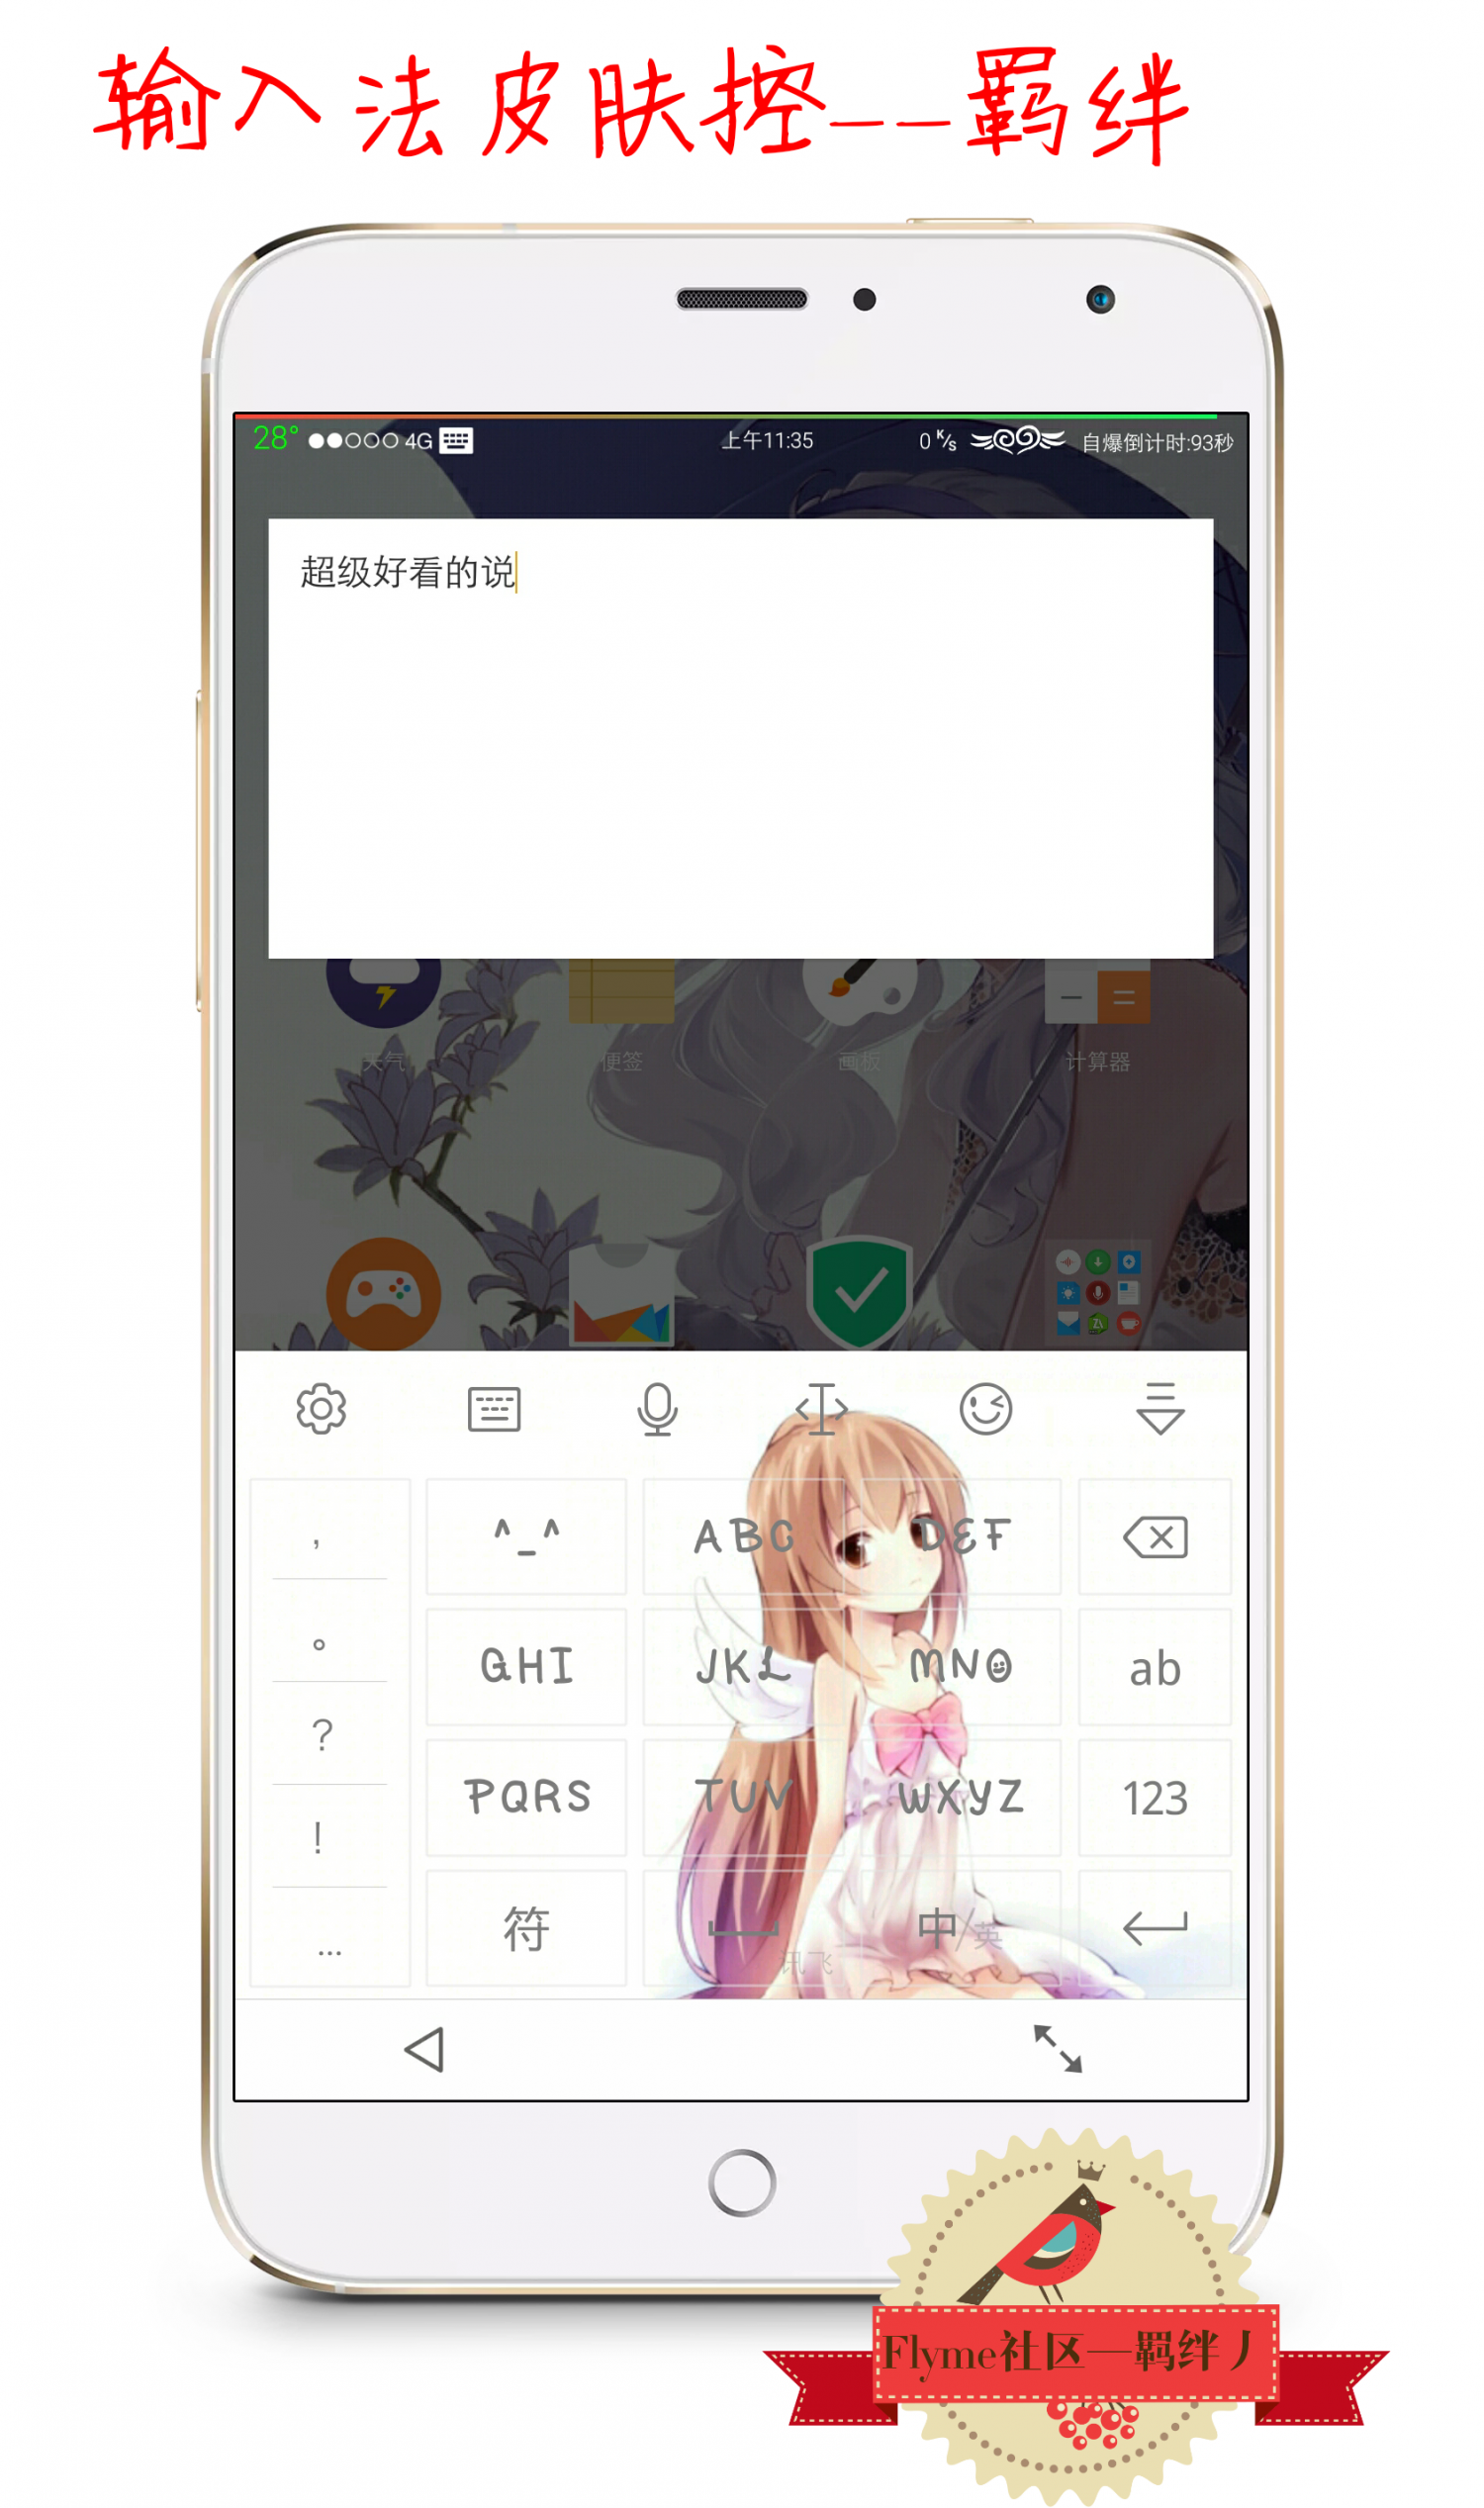 201508261219210.png